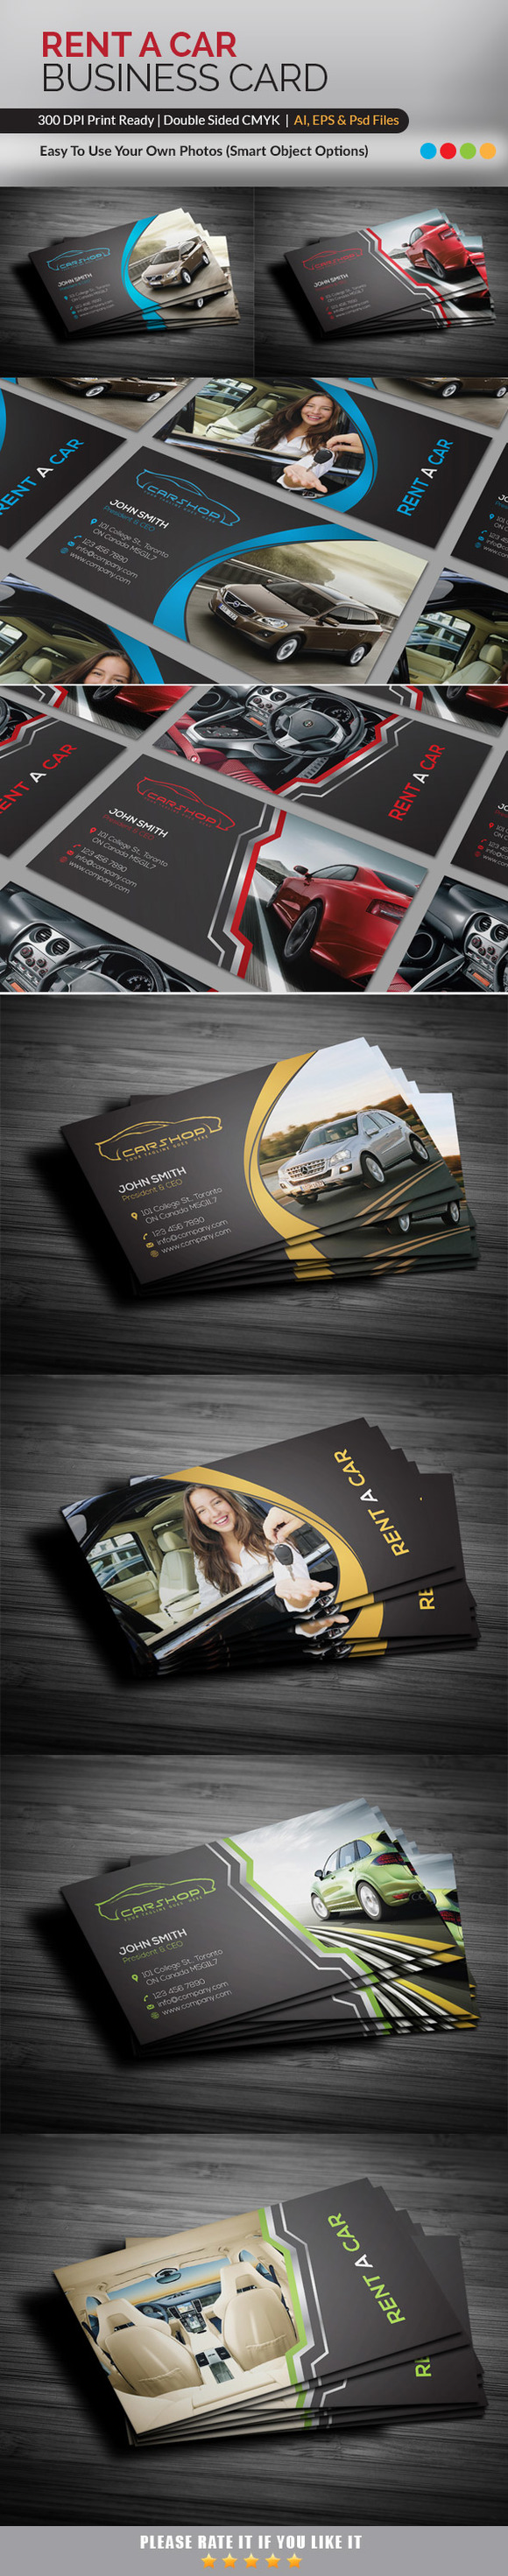 Rent a car business card by rq designs on creativework247 rent a car business card by rq designs on creativework247 magicingreecefo Images